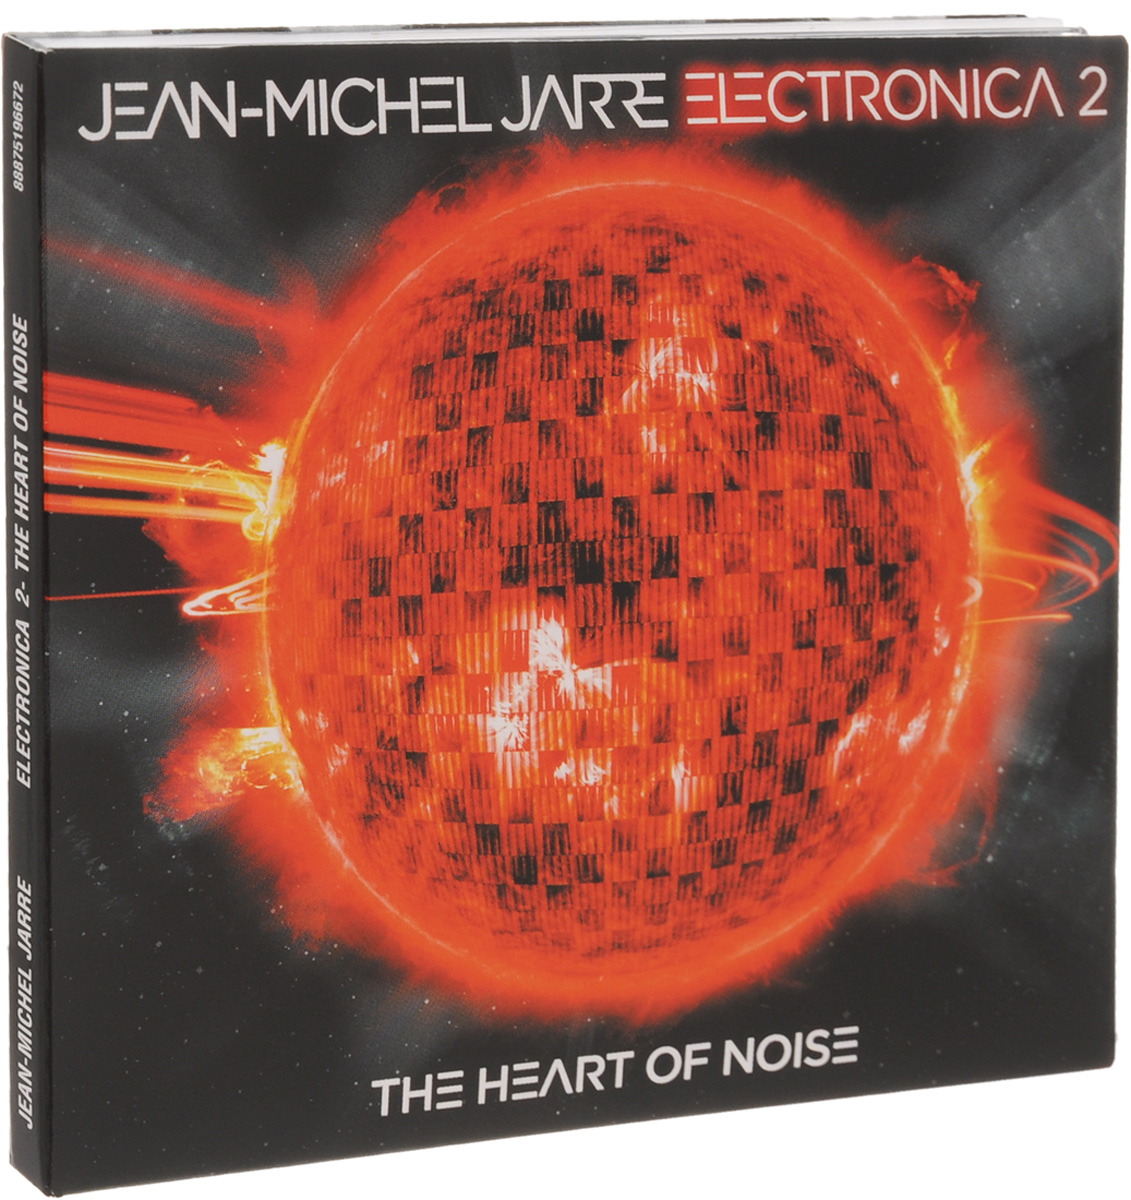 Жан-Мишель Жарр Jean-Michel Jarre. Electronica 2 - The Heart Of Noise виниловая пластинка jean michel jarre electronica 2 the heart of noise